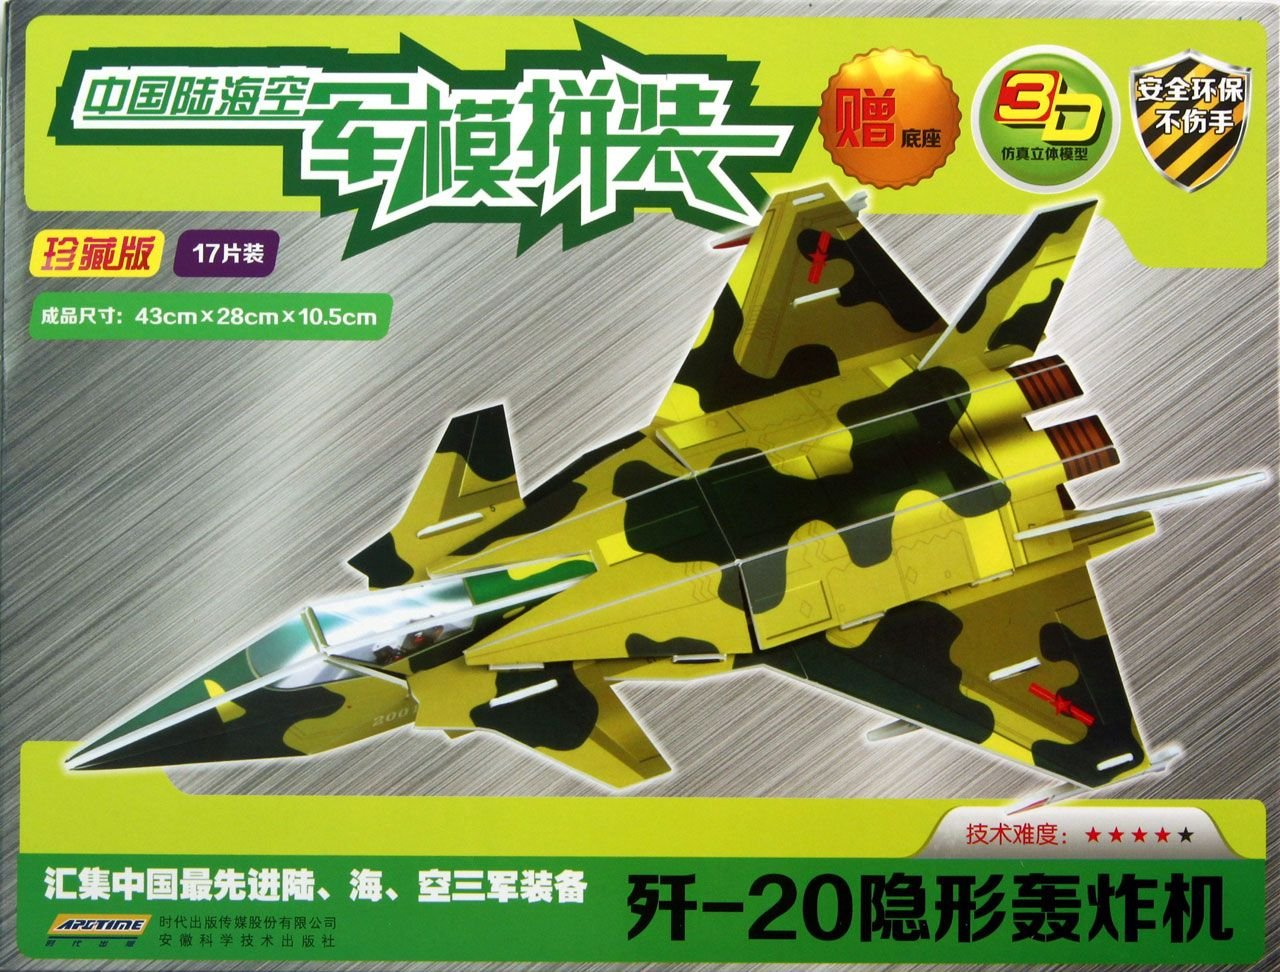 J-20 Stealth Bombers(Collectors Edition: 17 Pieces) (Chinese Edition) ebook